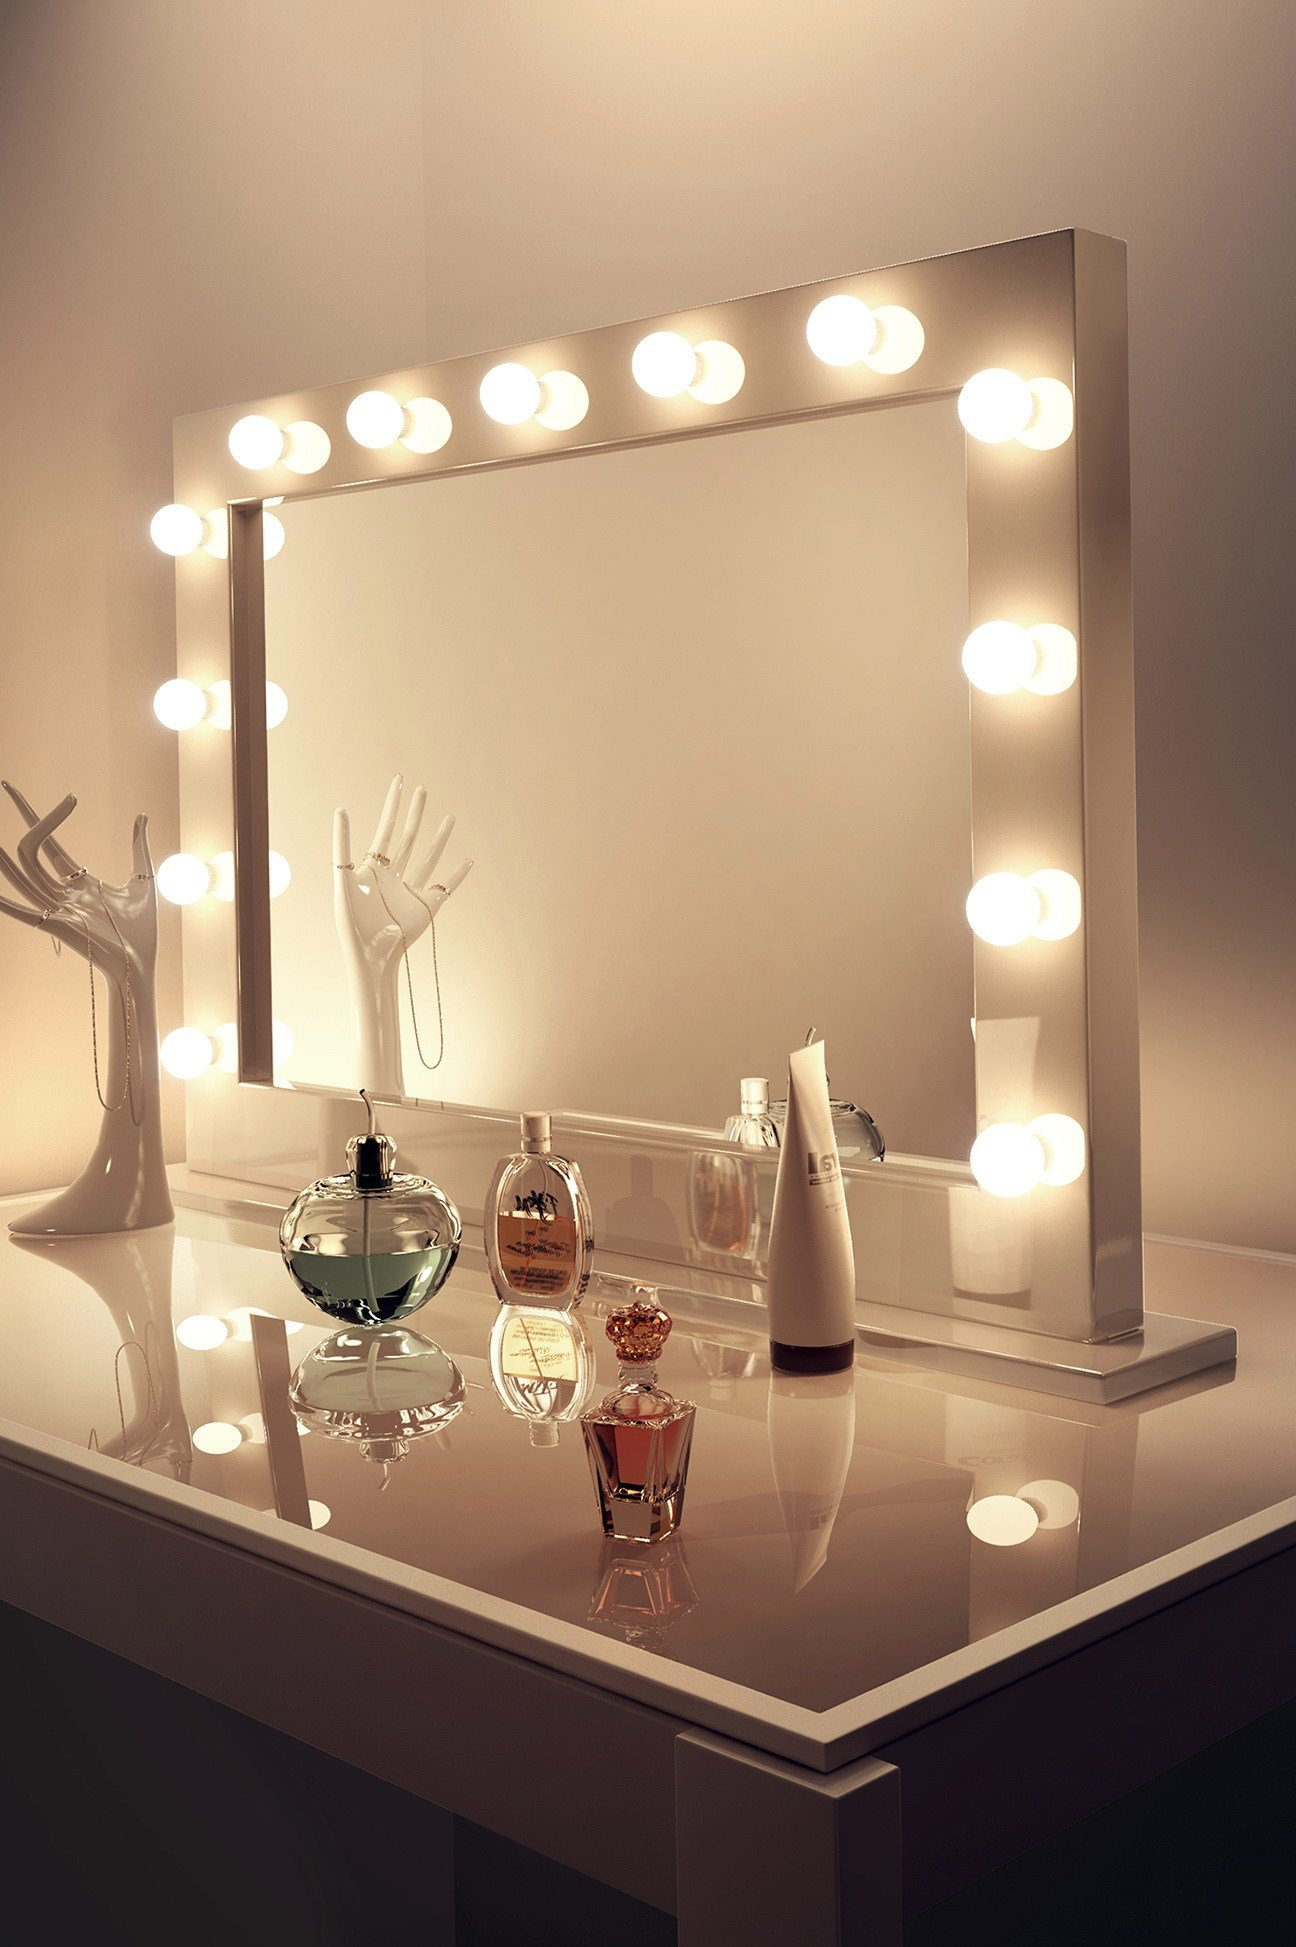 Best Makeup Mirrors With Lights Around Them Home Design Ideas With Pictures